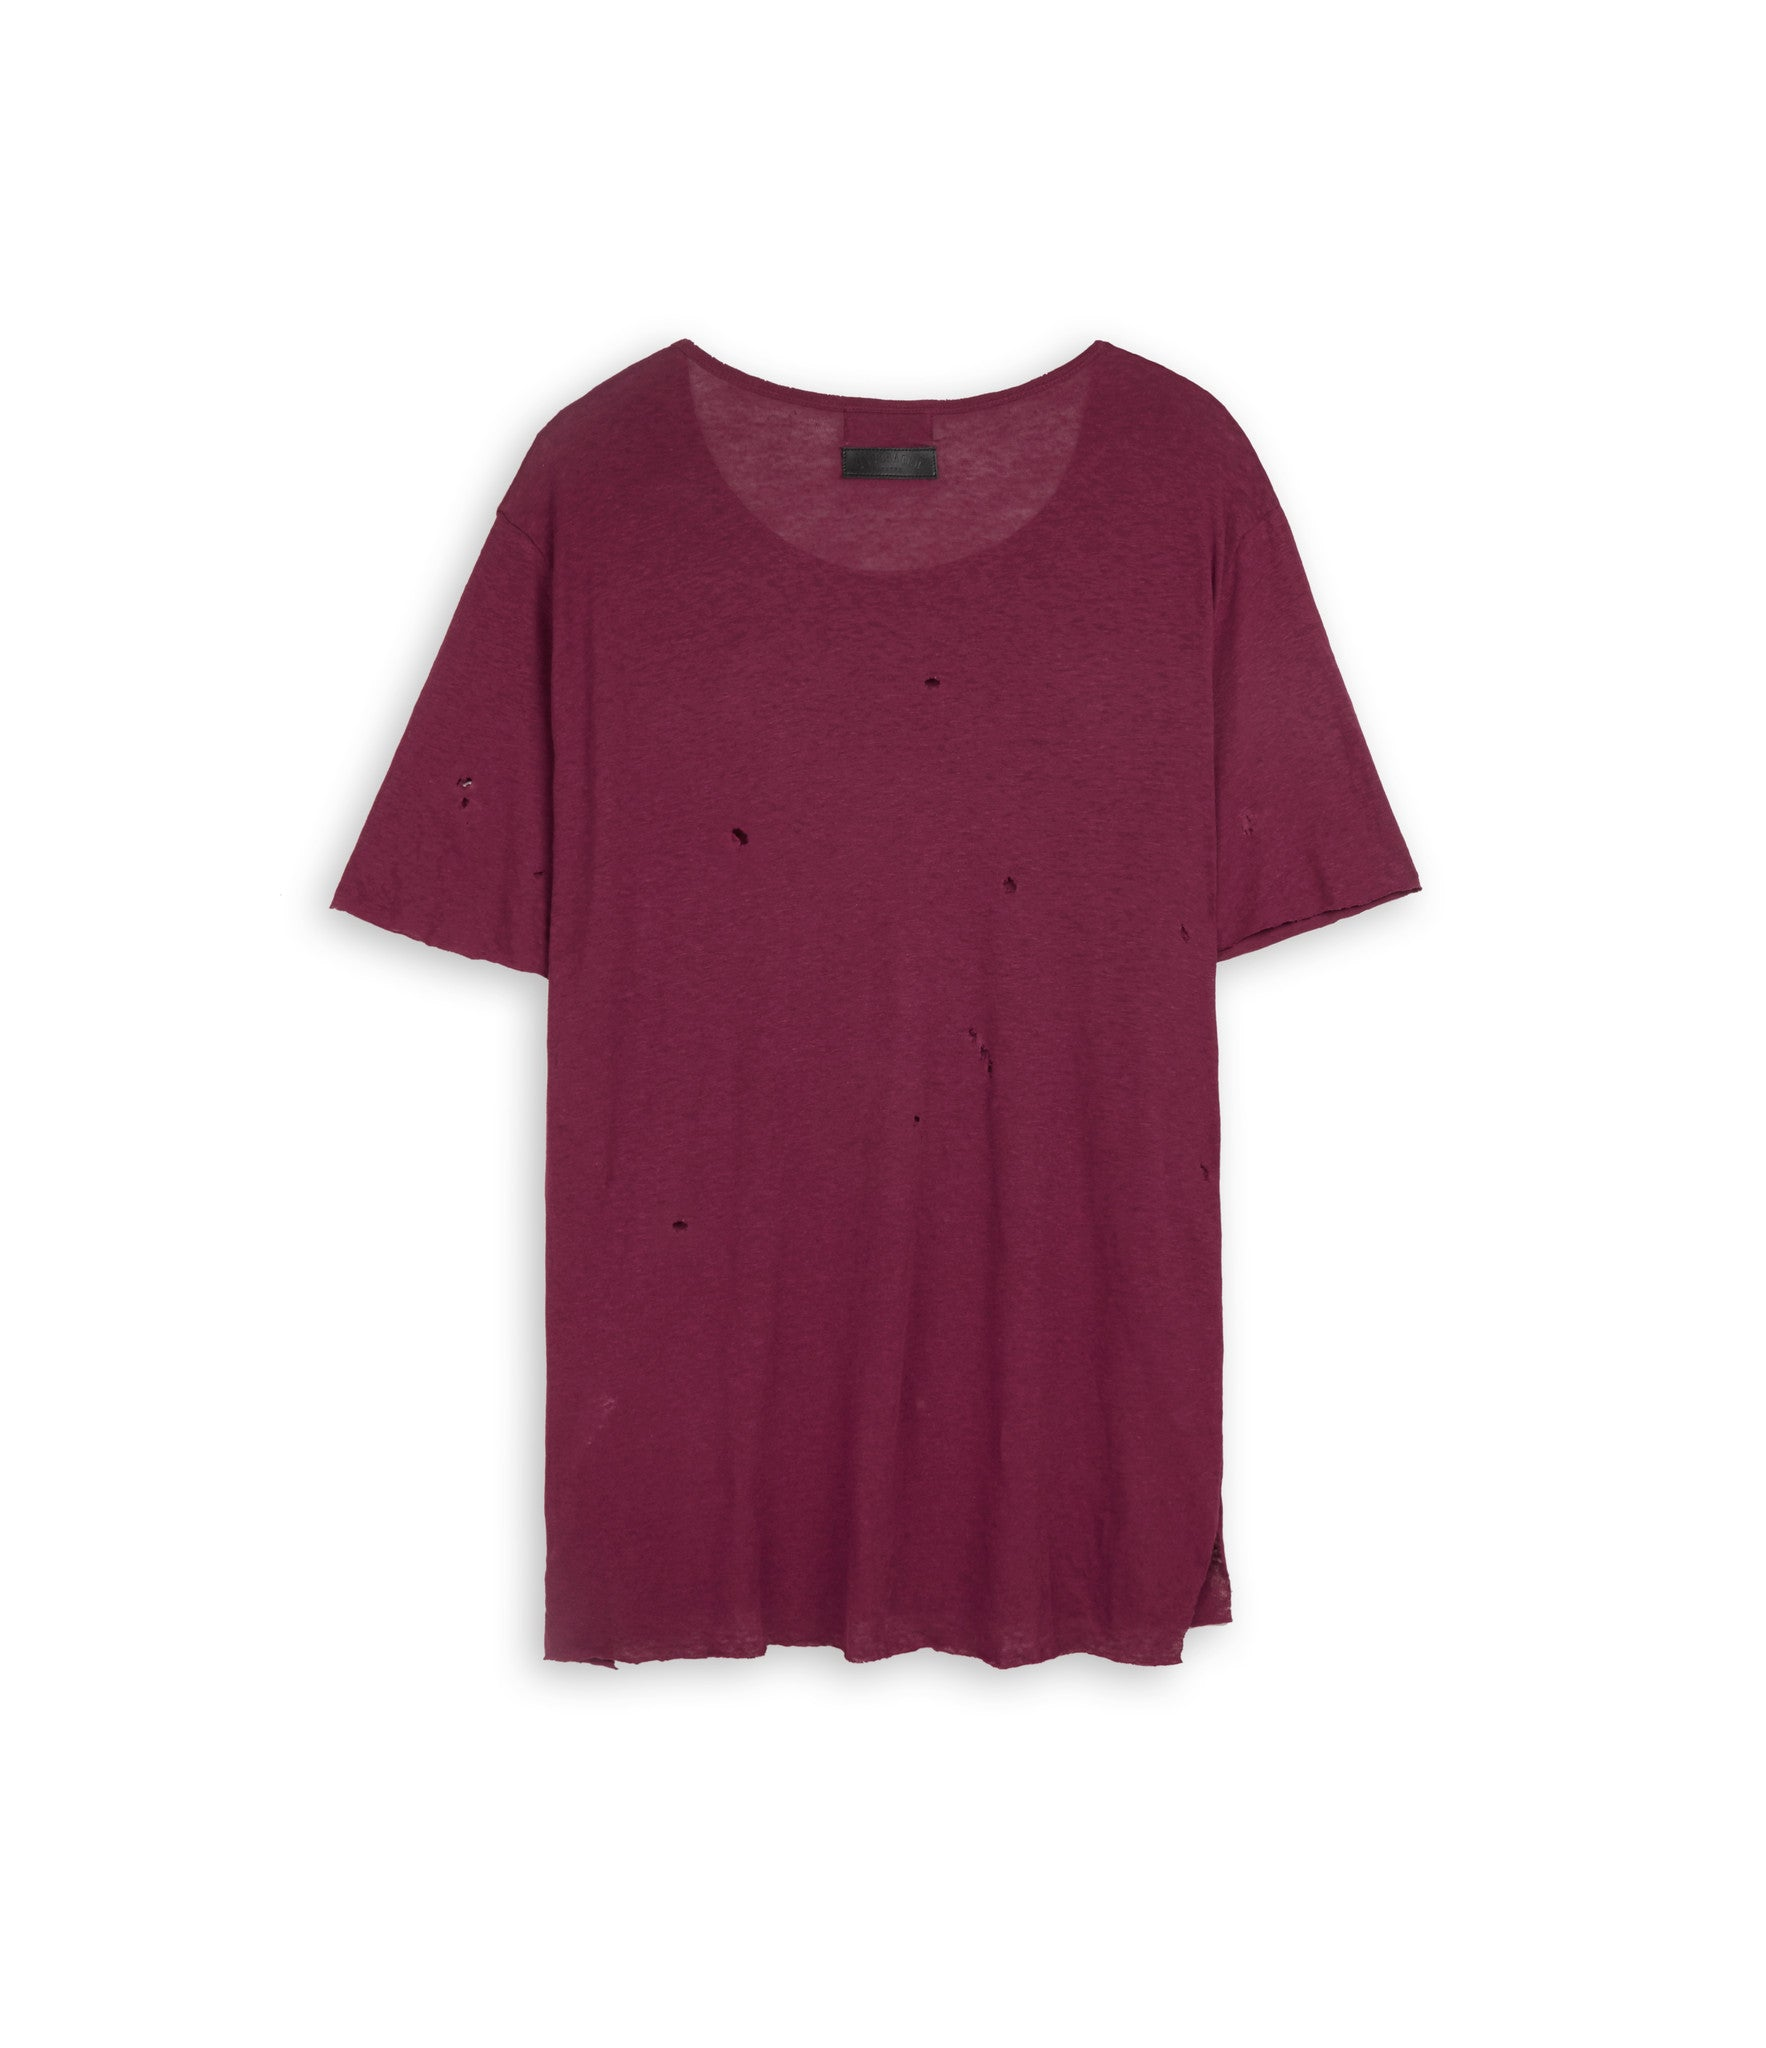 D10V2 Exile Distressed Tee - Oxblood - underated london - underatedco - 3